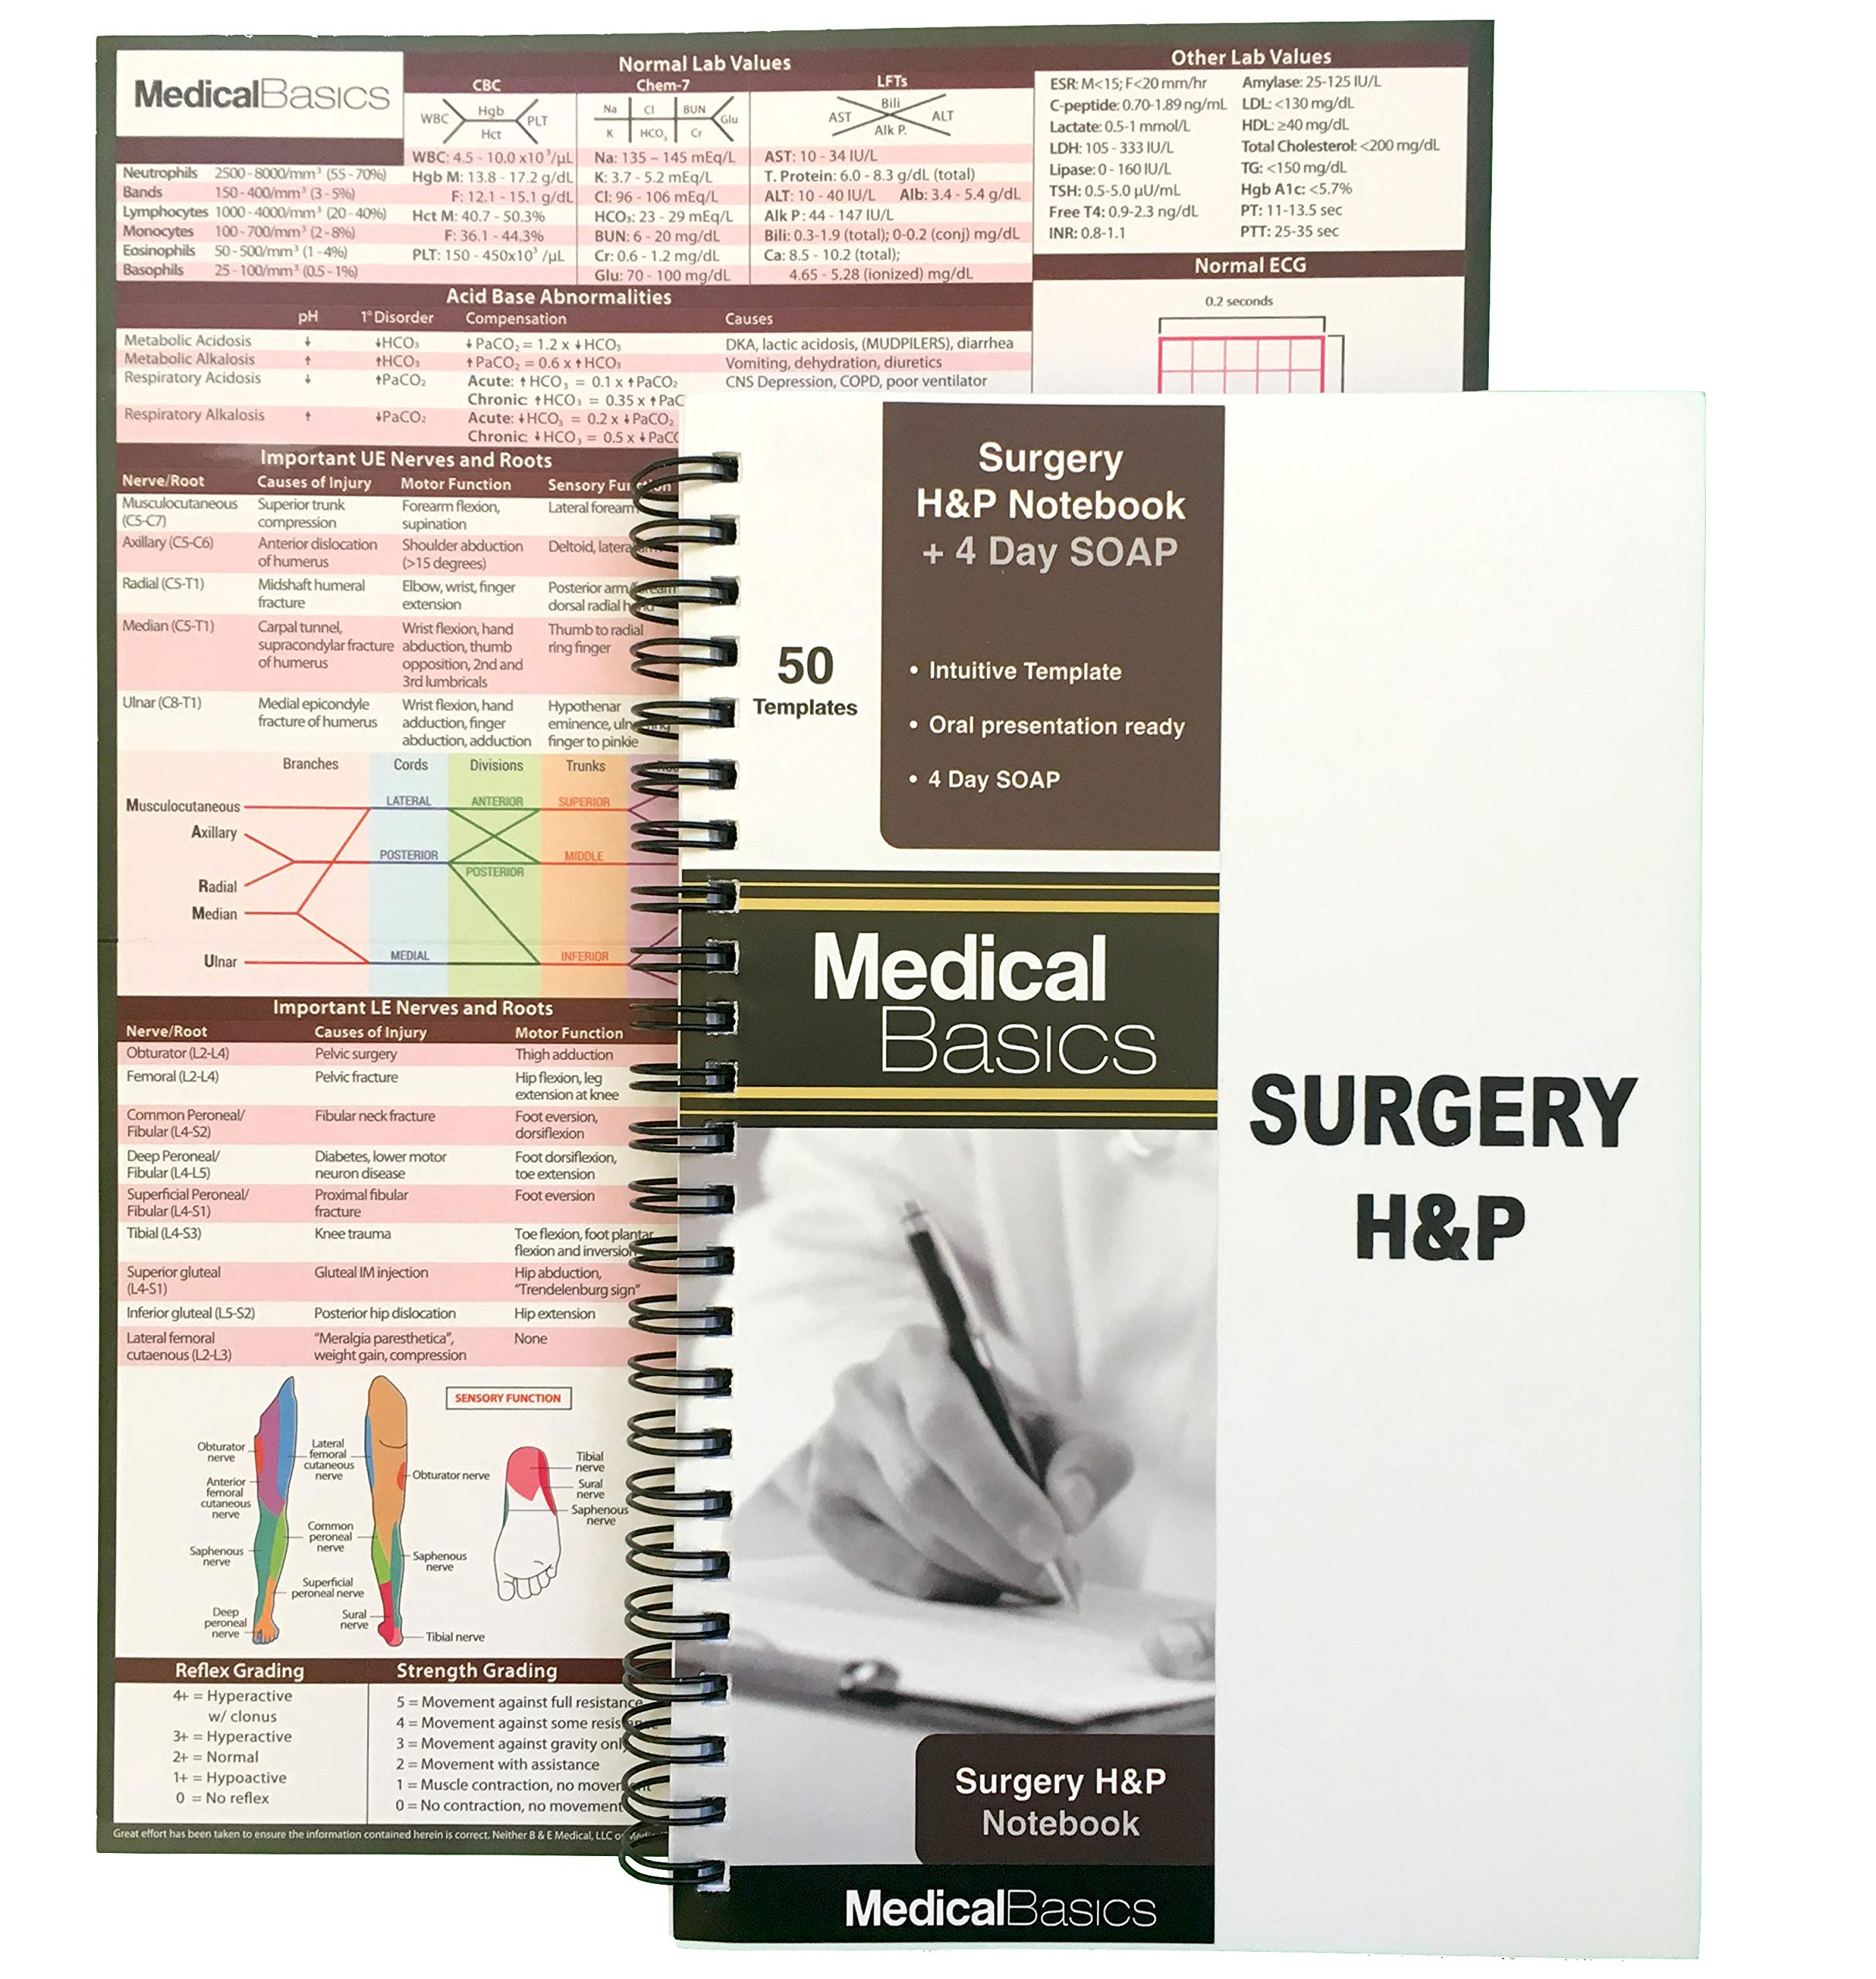 Surgery H&P Notebook with 4 Day SOAP - Medical History and Physical Notebook, 50 Medical templates with Perforations by Medical Basics